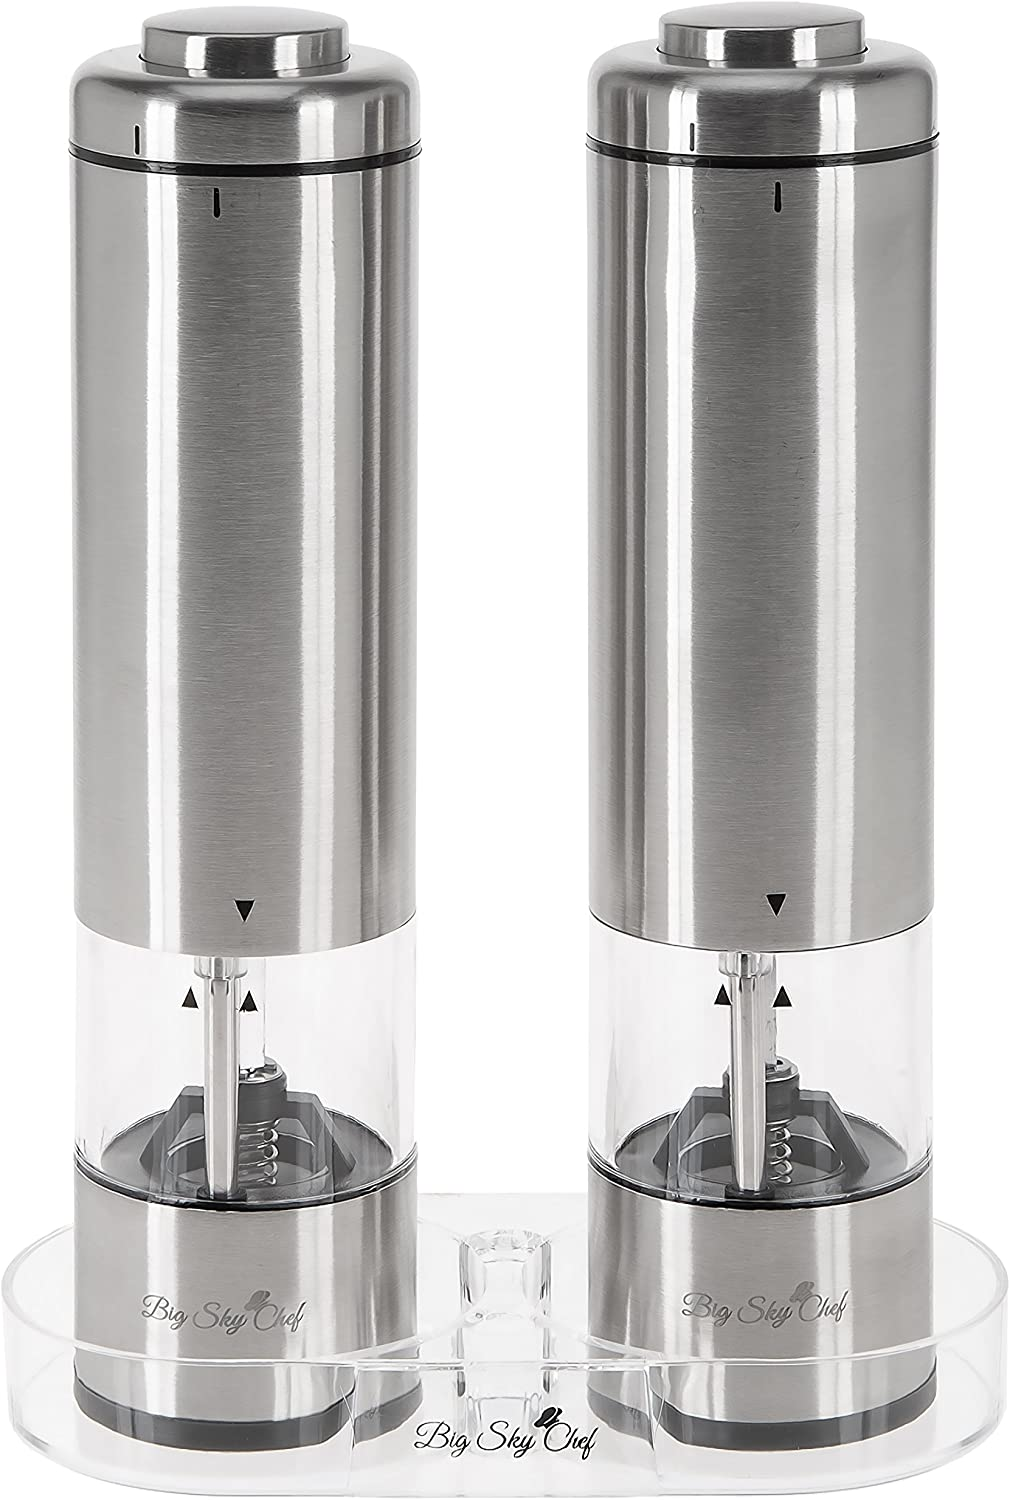 Battery Operated Salt and Pepper Grinder Set (Pack of 2 Mills) by Big Sky Chef - Stainless Steel- LED Light- Adjustable Coarseness- Complimentary Mill Rest